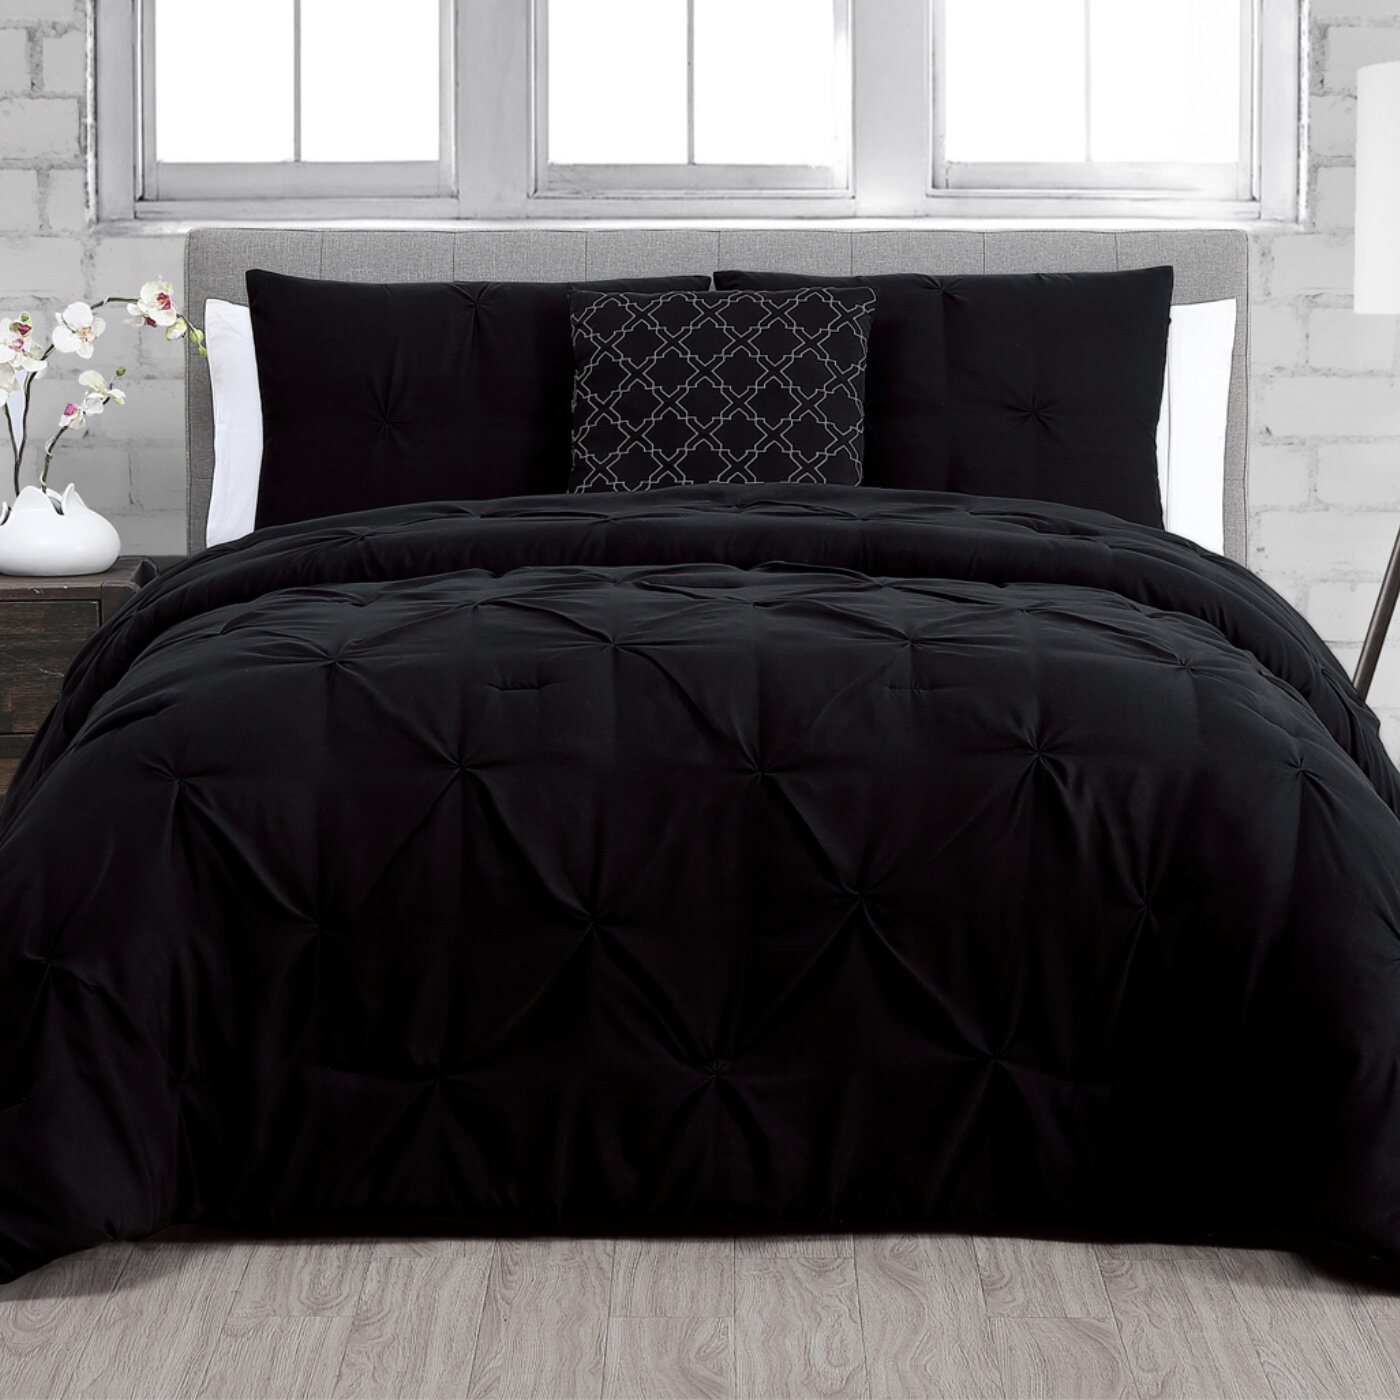 Charlton Home Mikami 4 Piece Comforter Set Reviews Wayfair